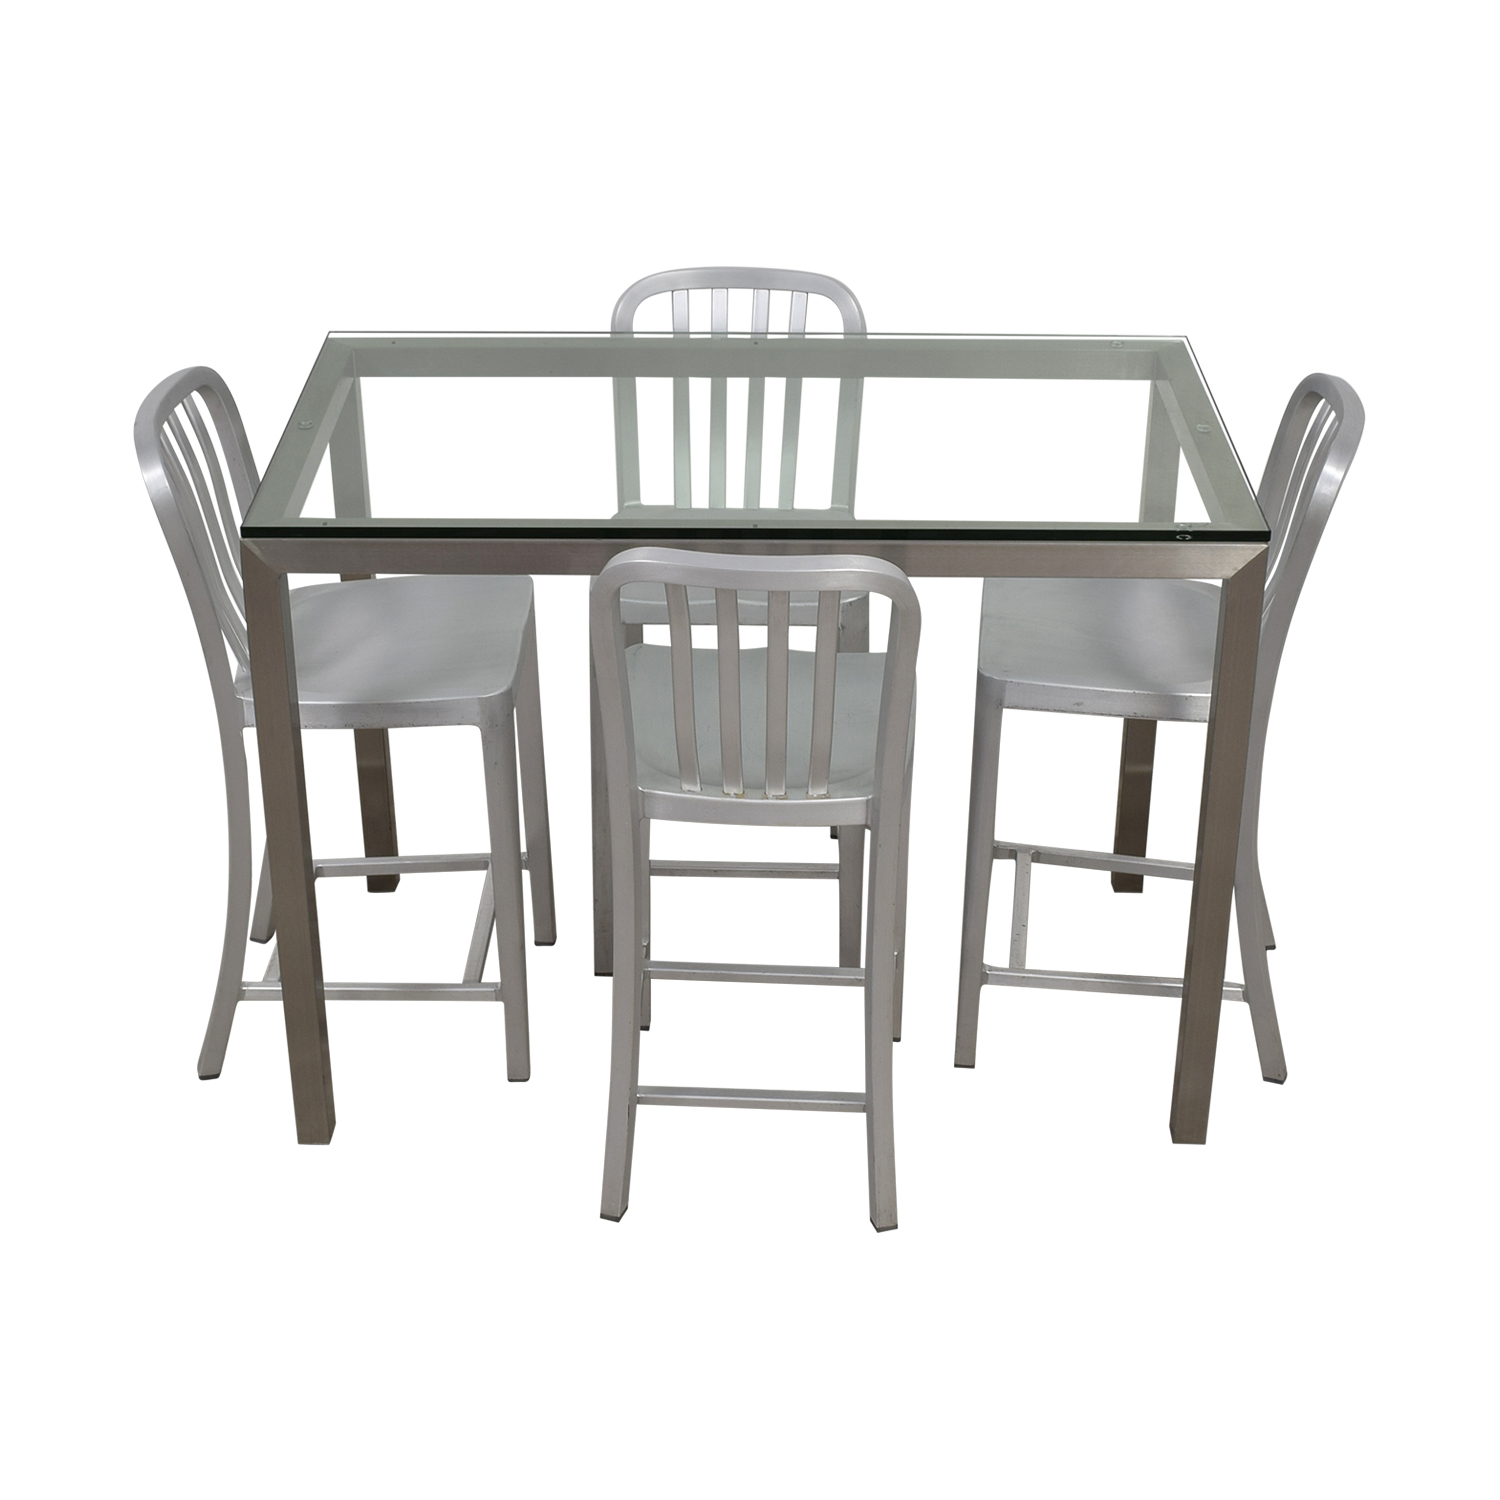 Crate & Barrel Crate & Barrel Parsons Glass and Metal High Table Set discount